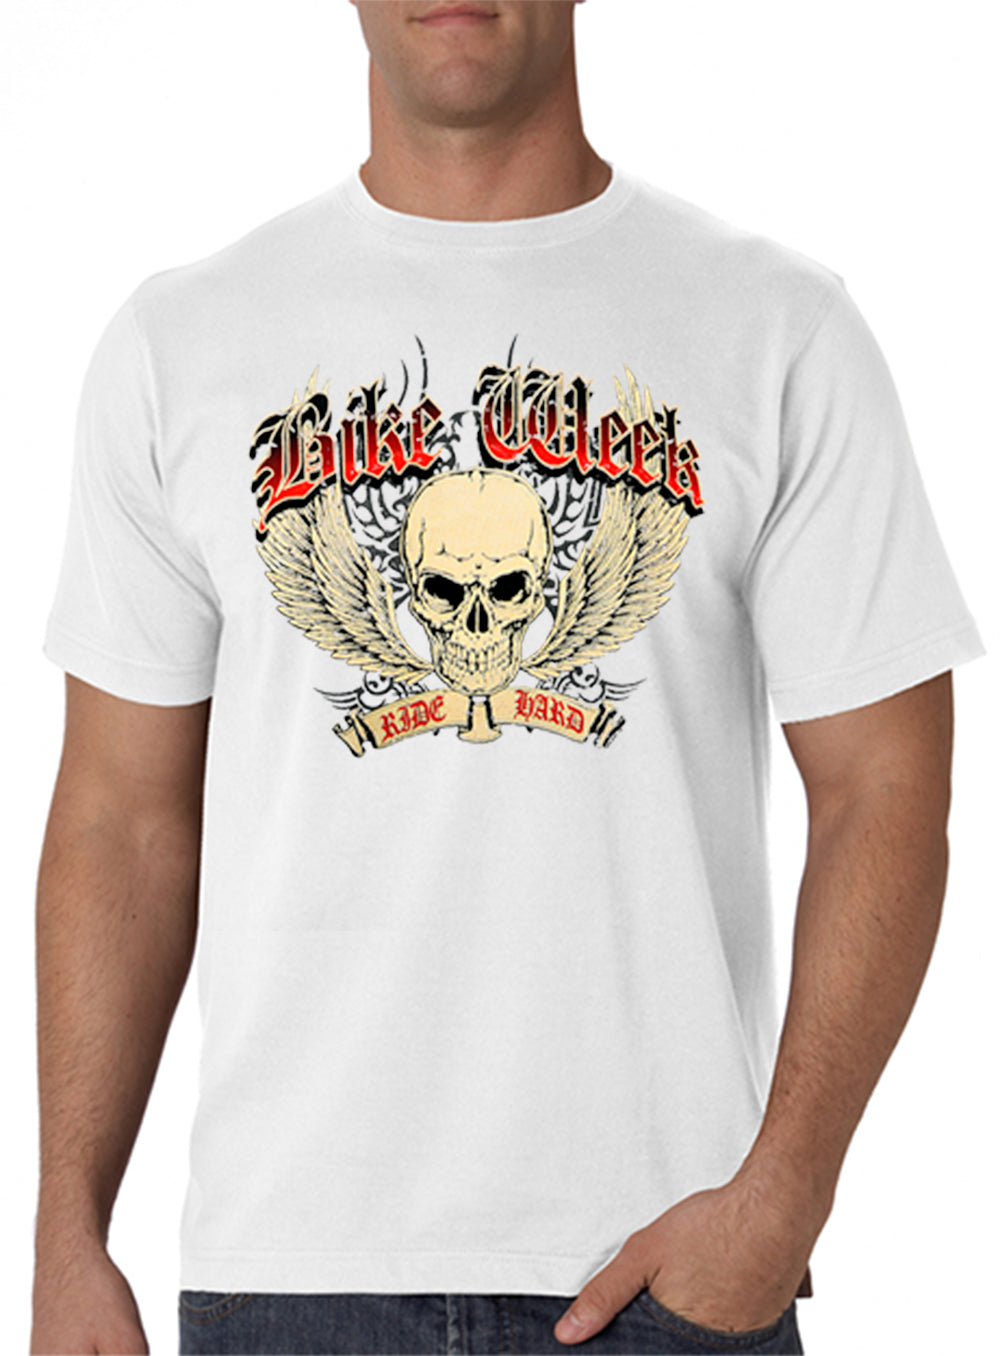 e1890b9ed Bike Week Ride Hard Men's T-Shirt – Bewild